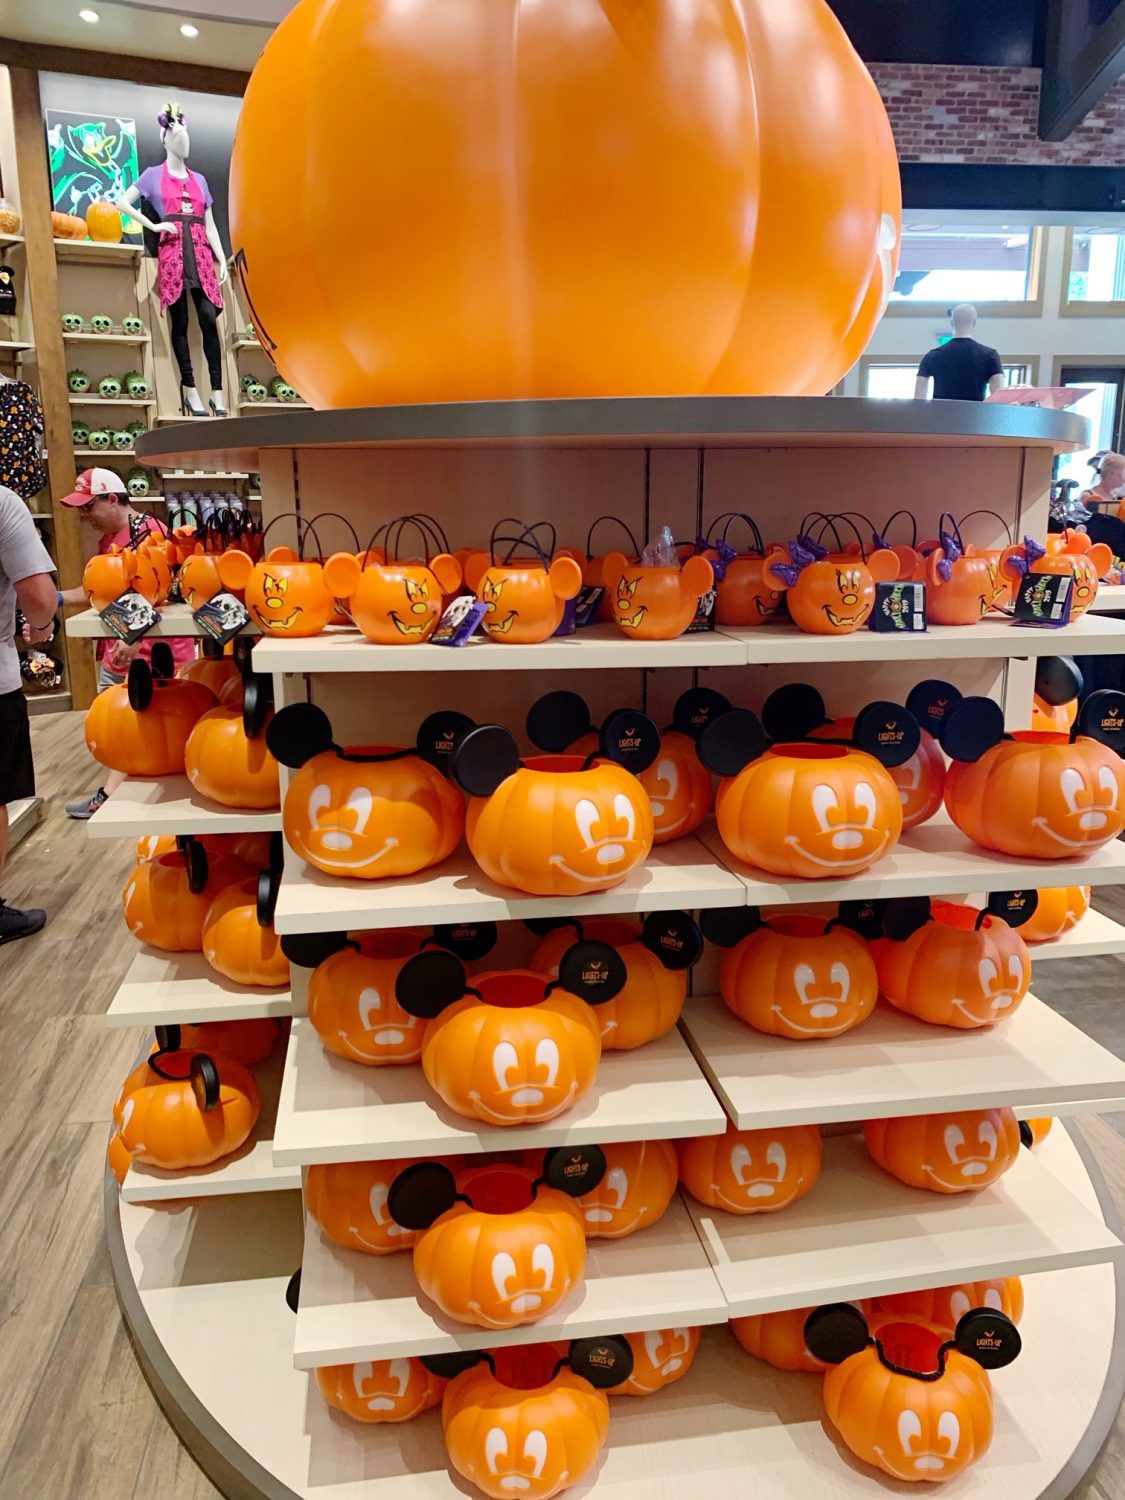 2019 Disney Halloween Merchandise | Disney World | World of Disney Halloween Merchandise